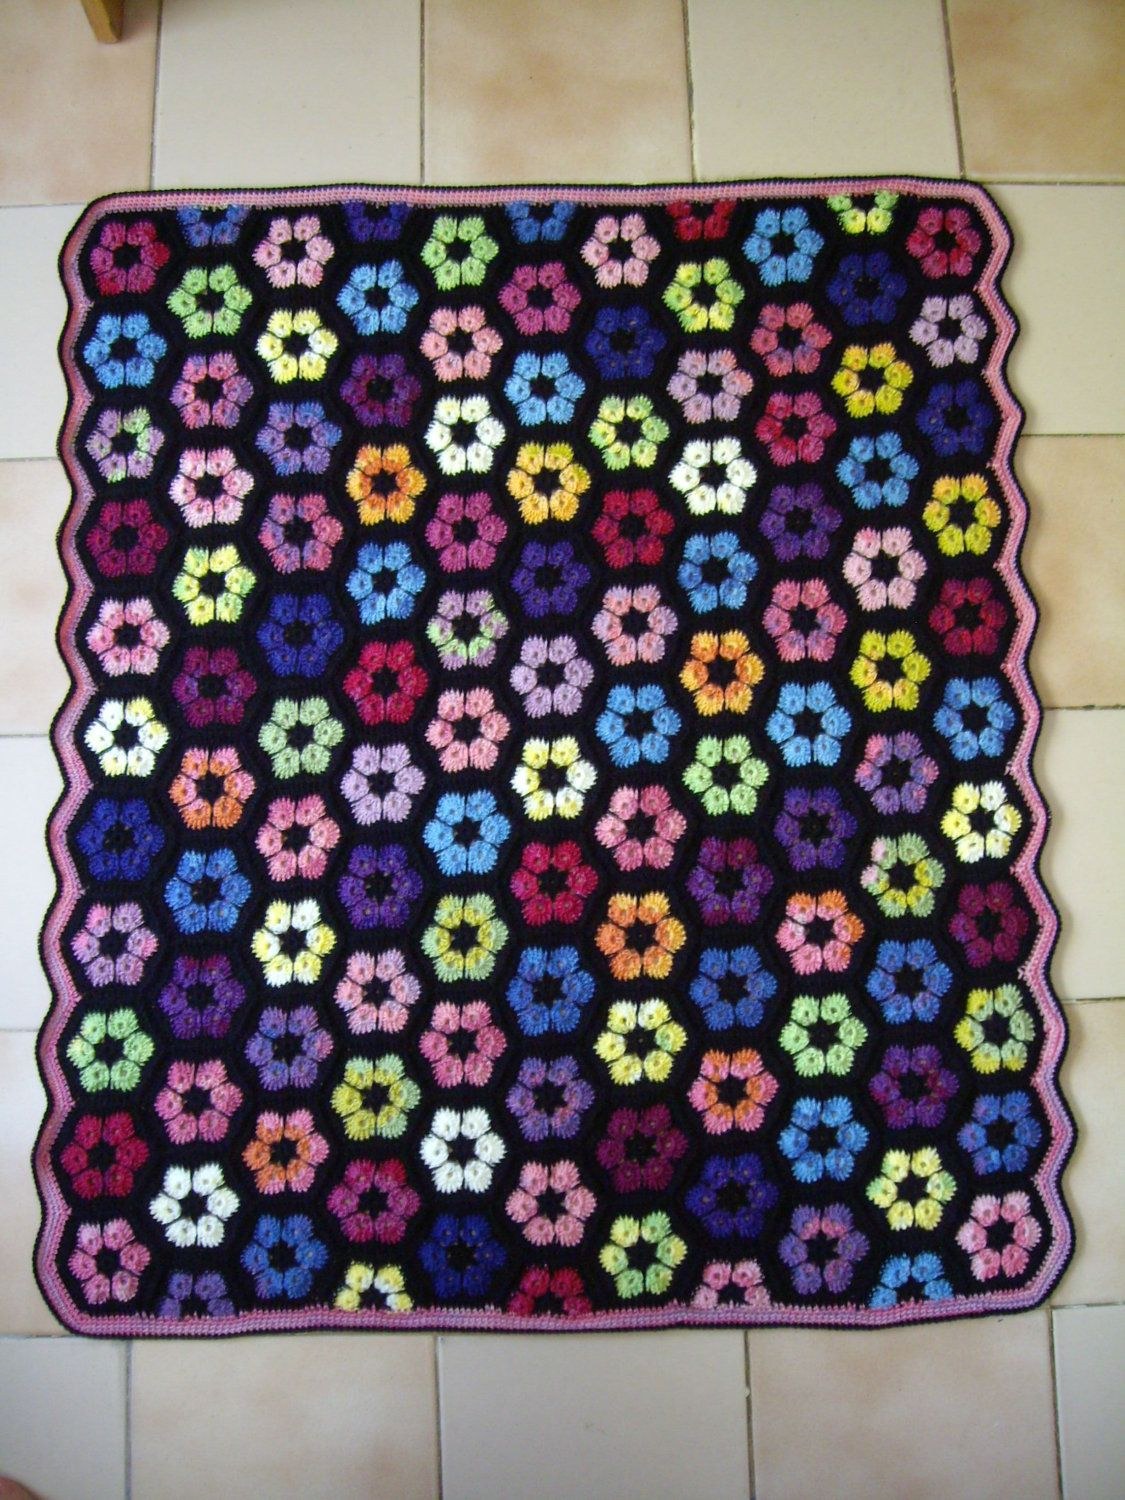 Granny Square Crochet Rug...Crochet Colorful Afghan...Knitted ...